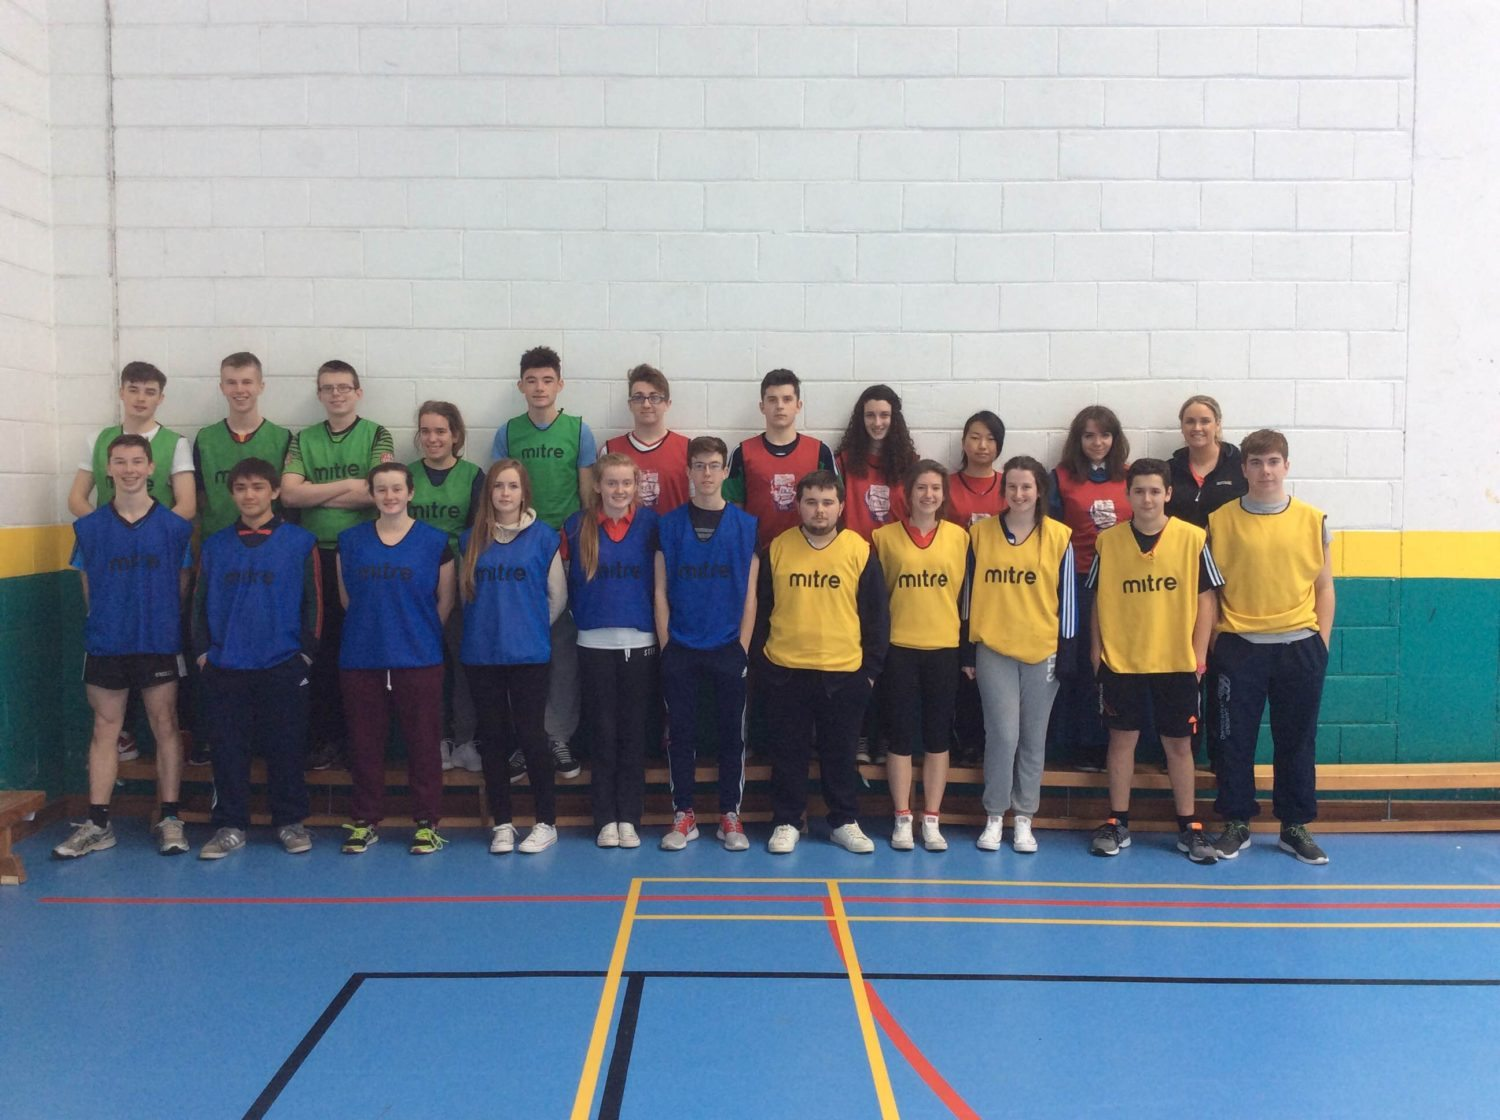 November 2015: Picture of Desmond College Senior Cycle Students participating in a Physical Education Research Project with NCCA and University of Limerick.